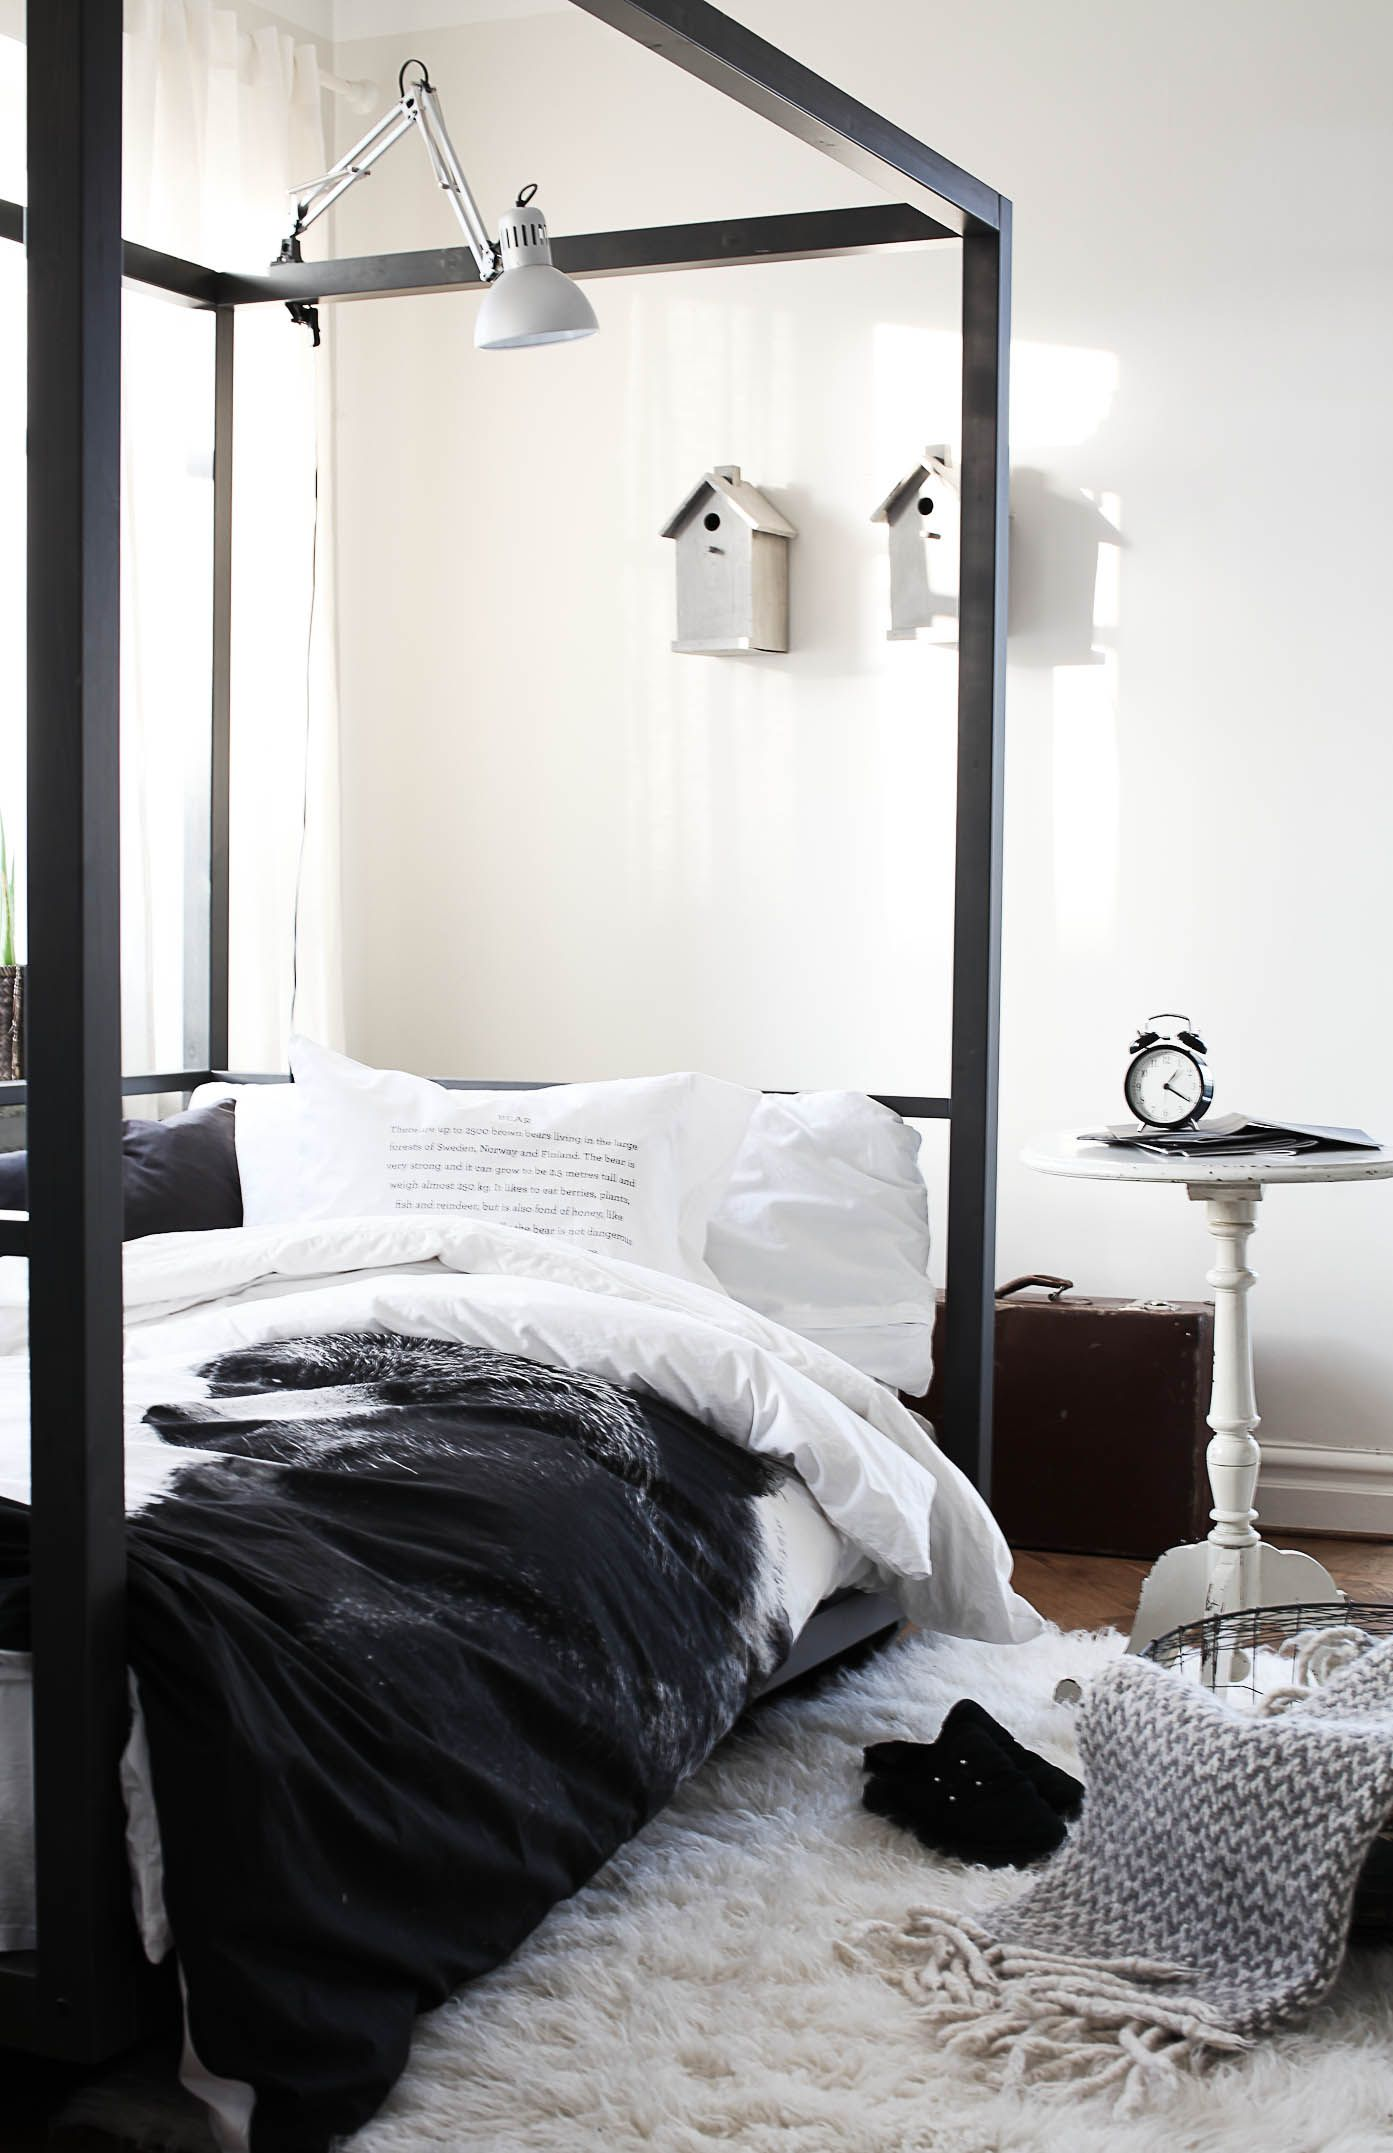 Wohndesign ahmedabad pin von manuela molk auf black and white love  pinterest  bedroom